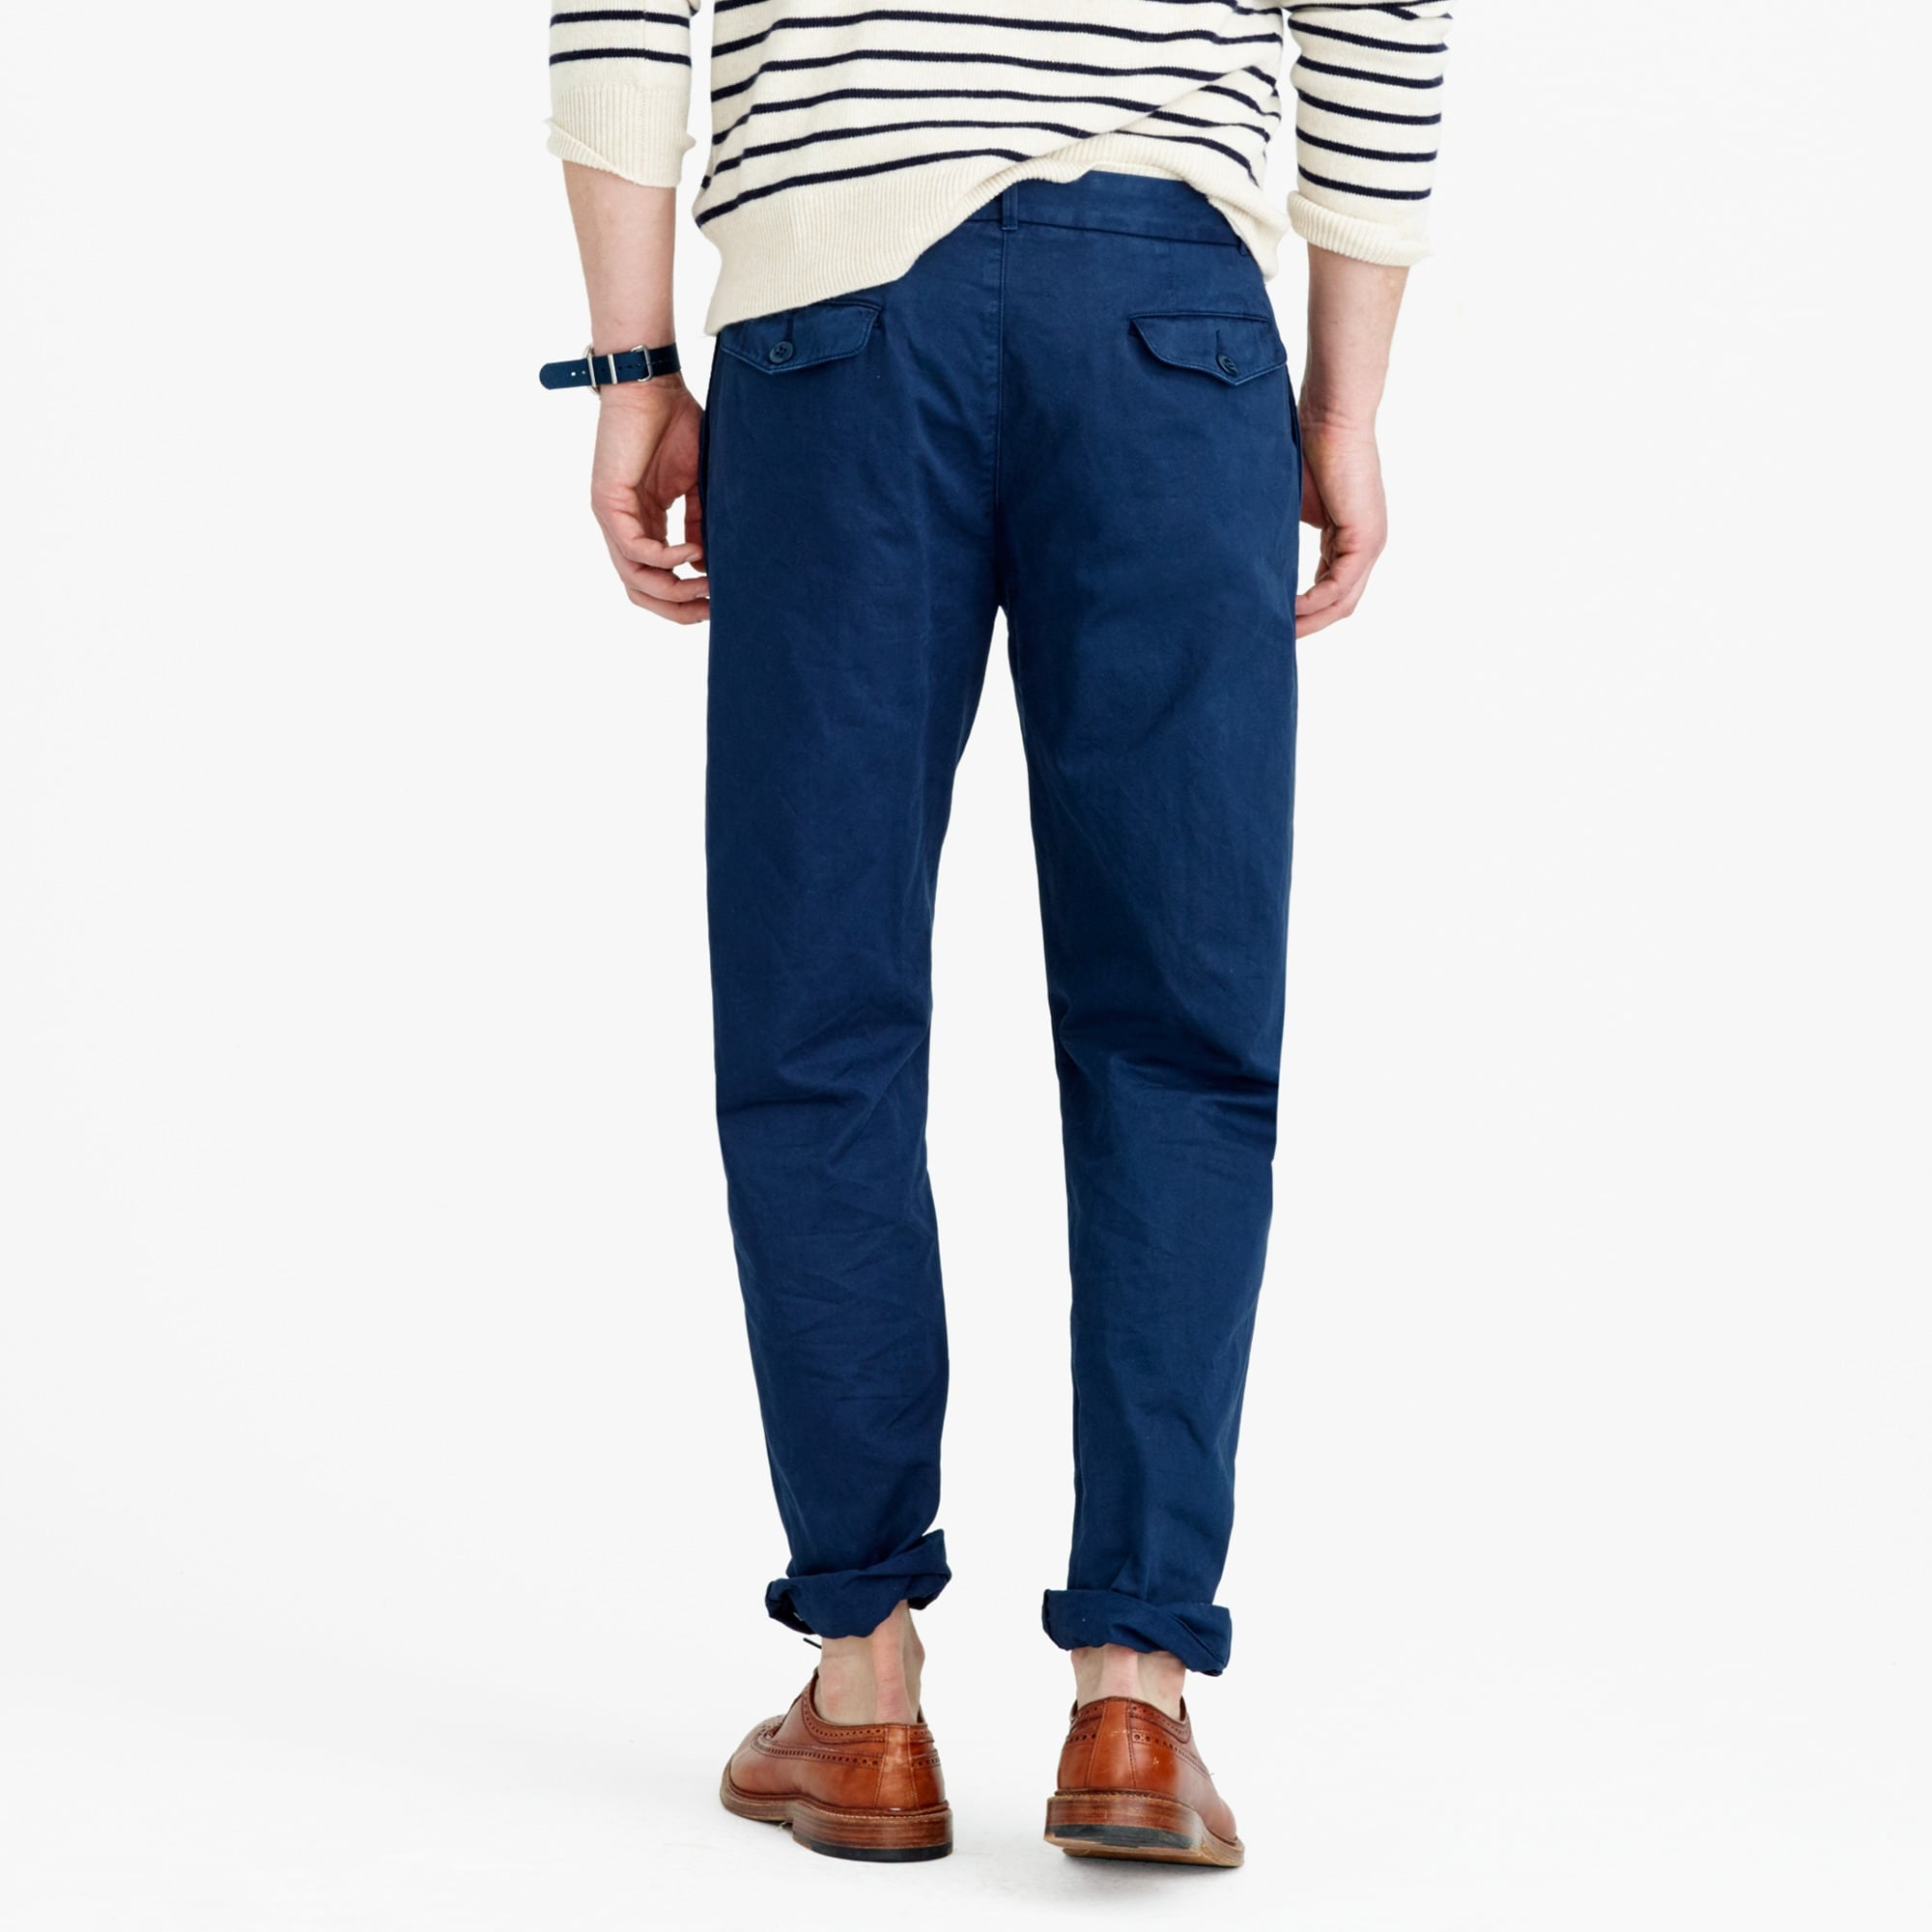 Image 4 for Wallace & Barnes double-pleated relaxed-fit military chino pant